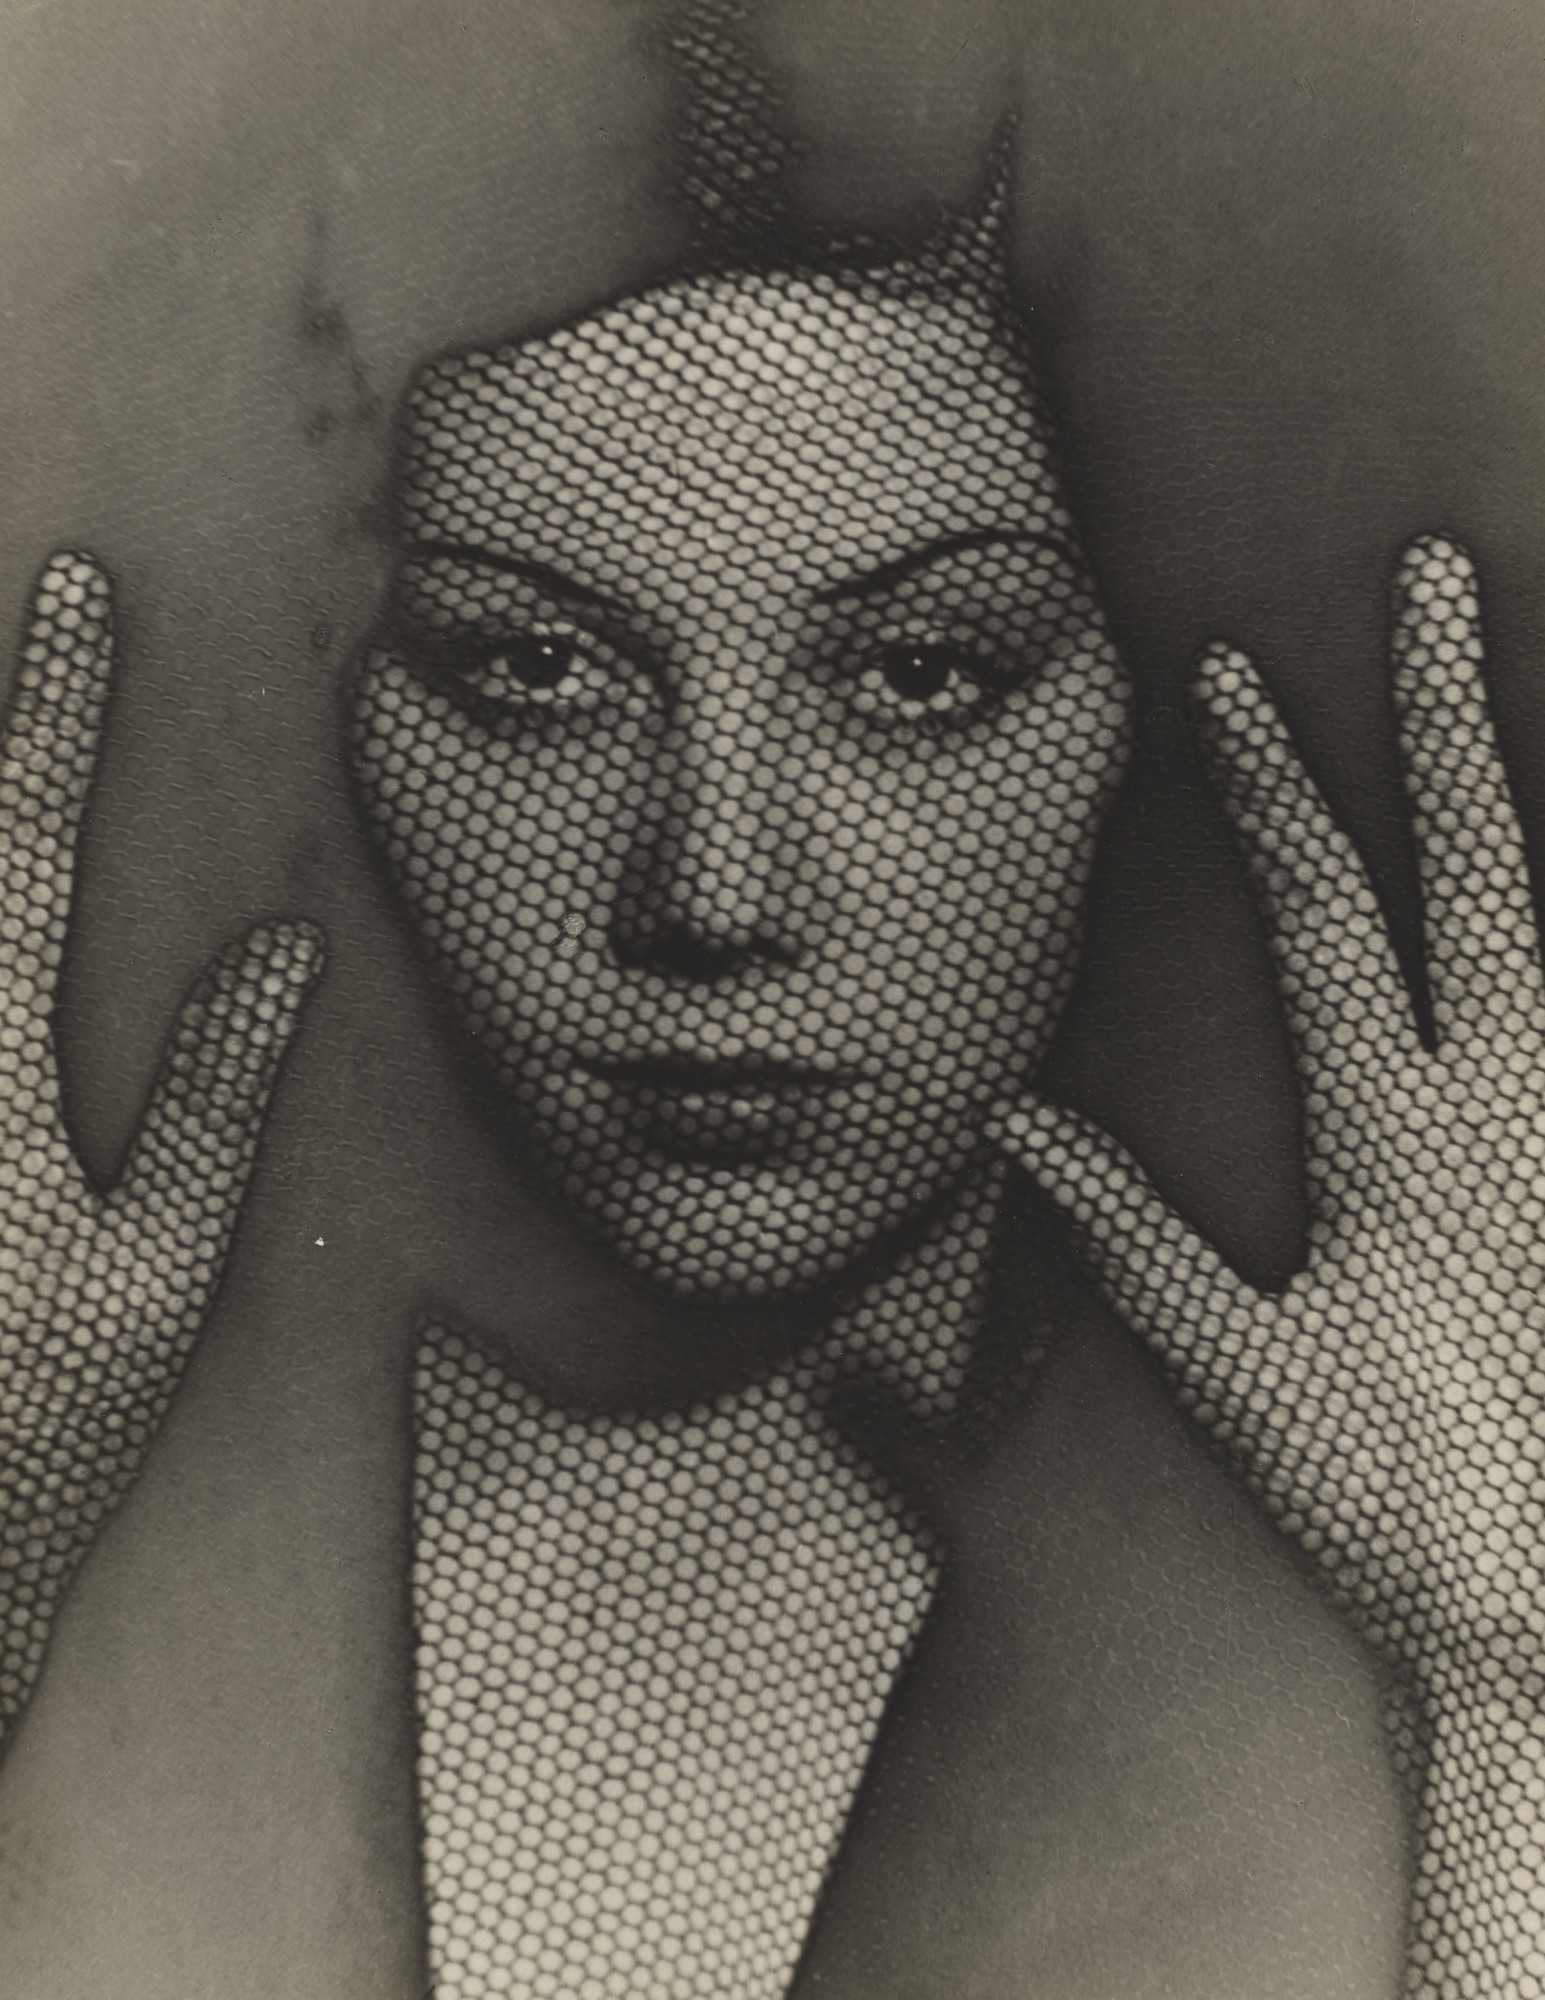 Man Ray (Emmanuel Radnitzky). The Veil. 1930